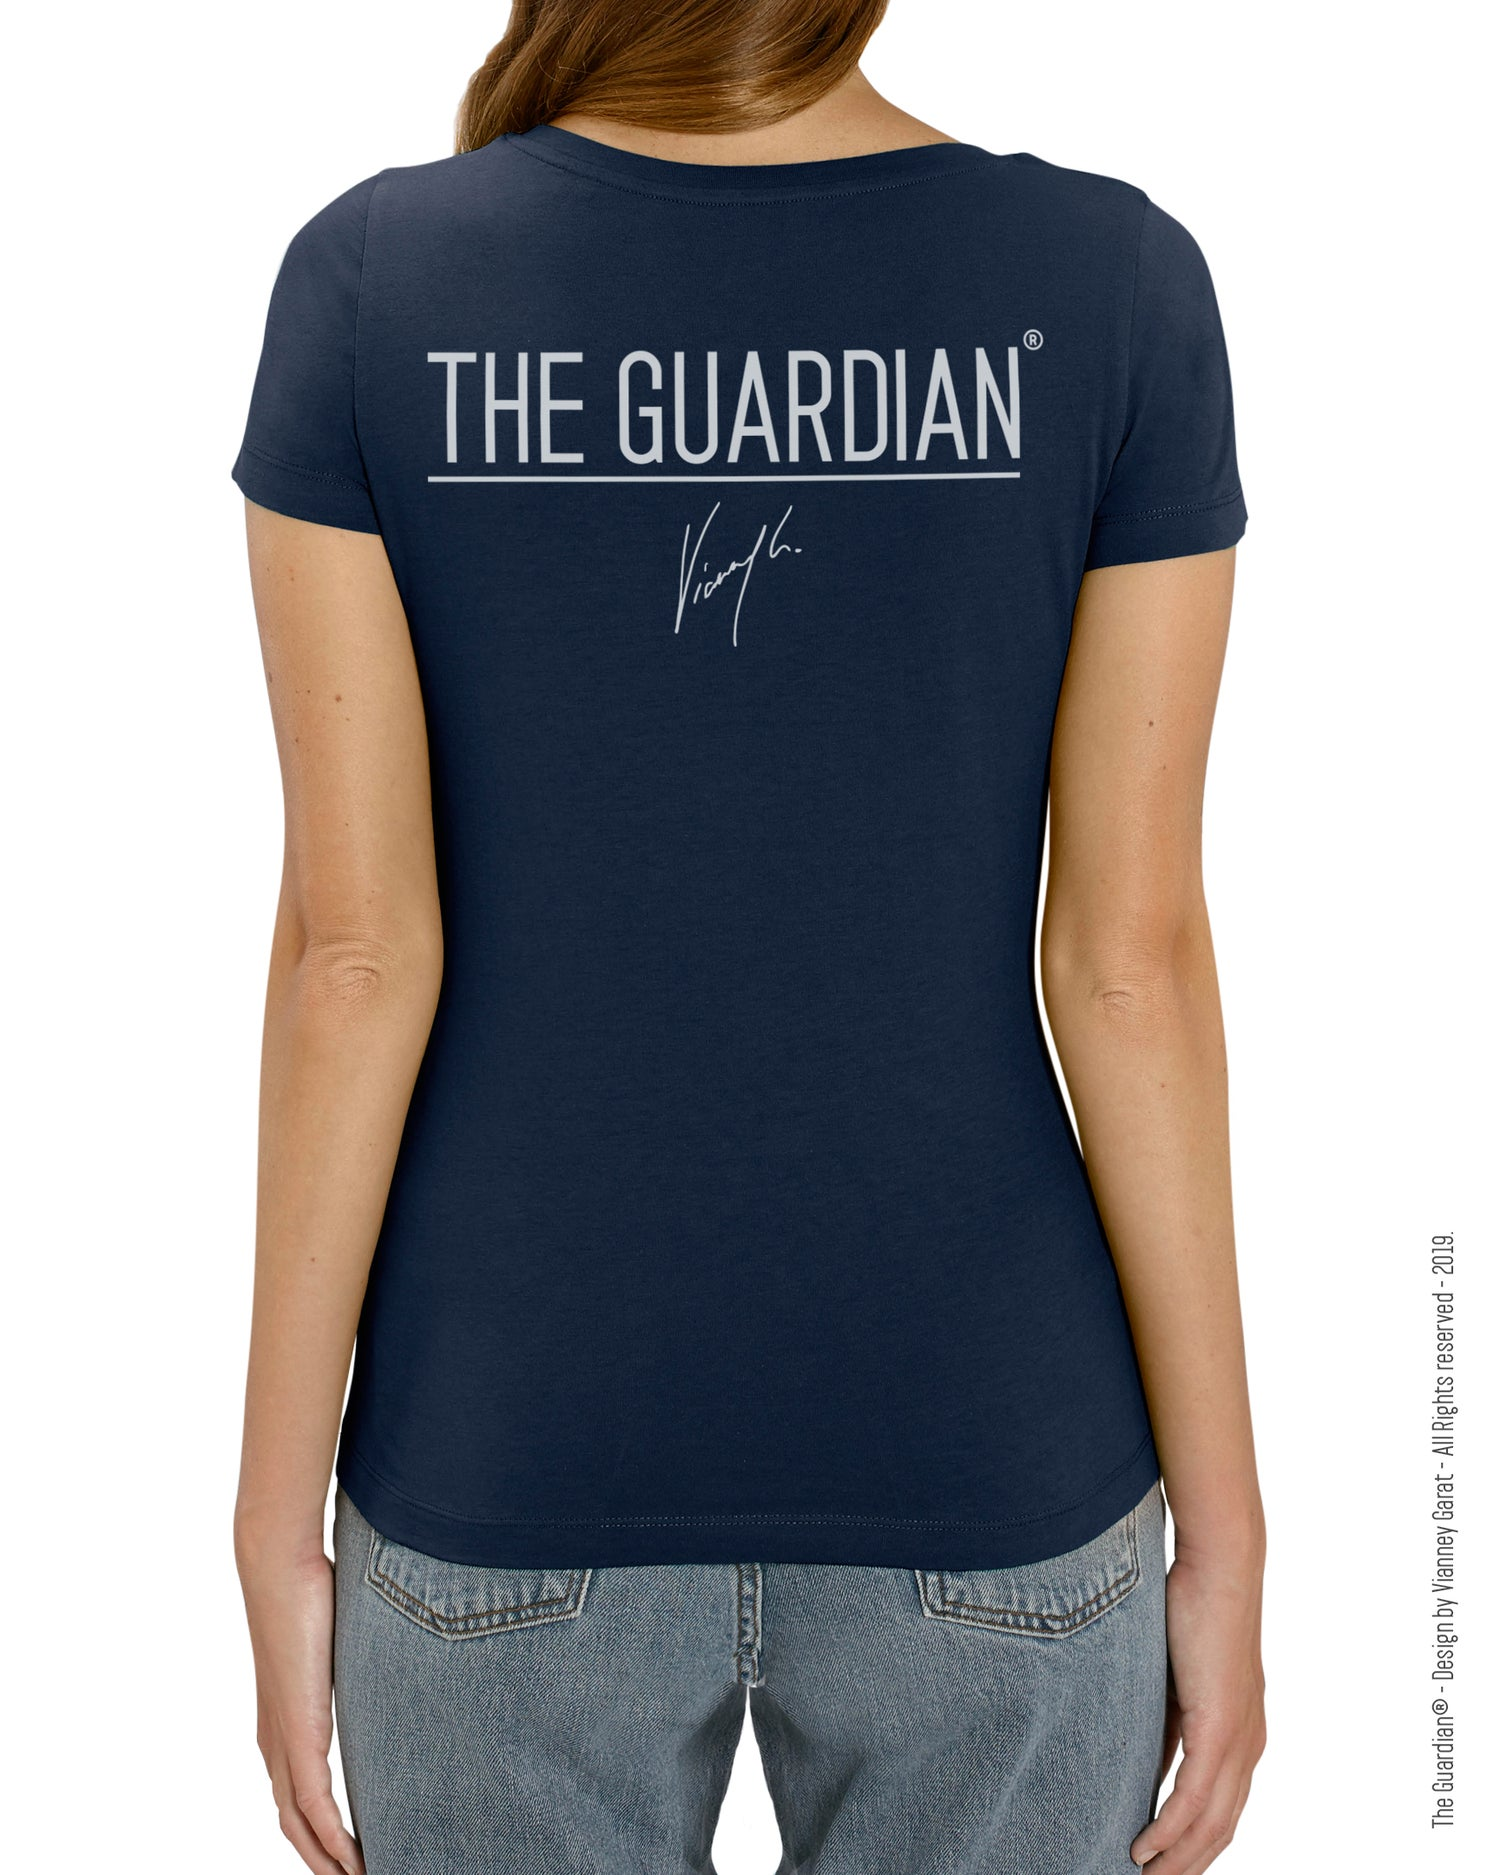 Image of T-SHIRT FEMME- THE GUARDIAN® - BLUE NAVY EDITION - Limited Edition